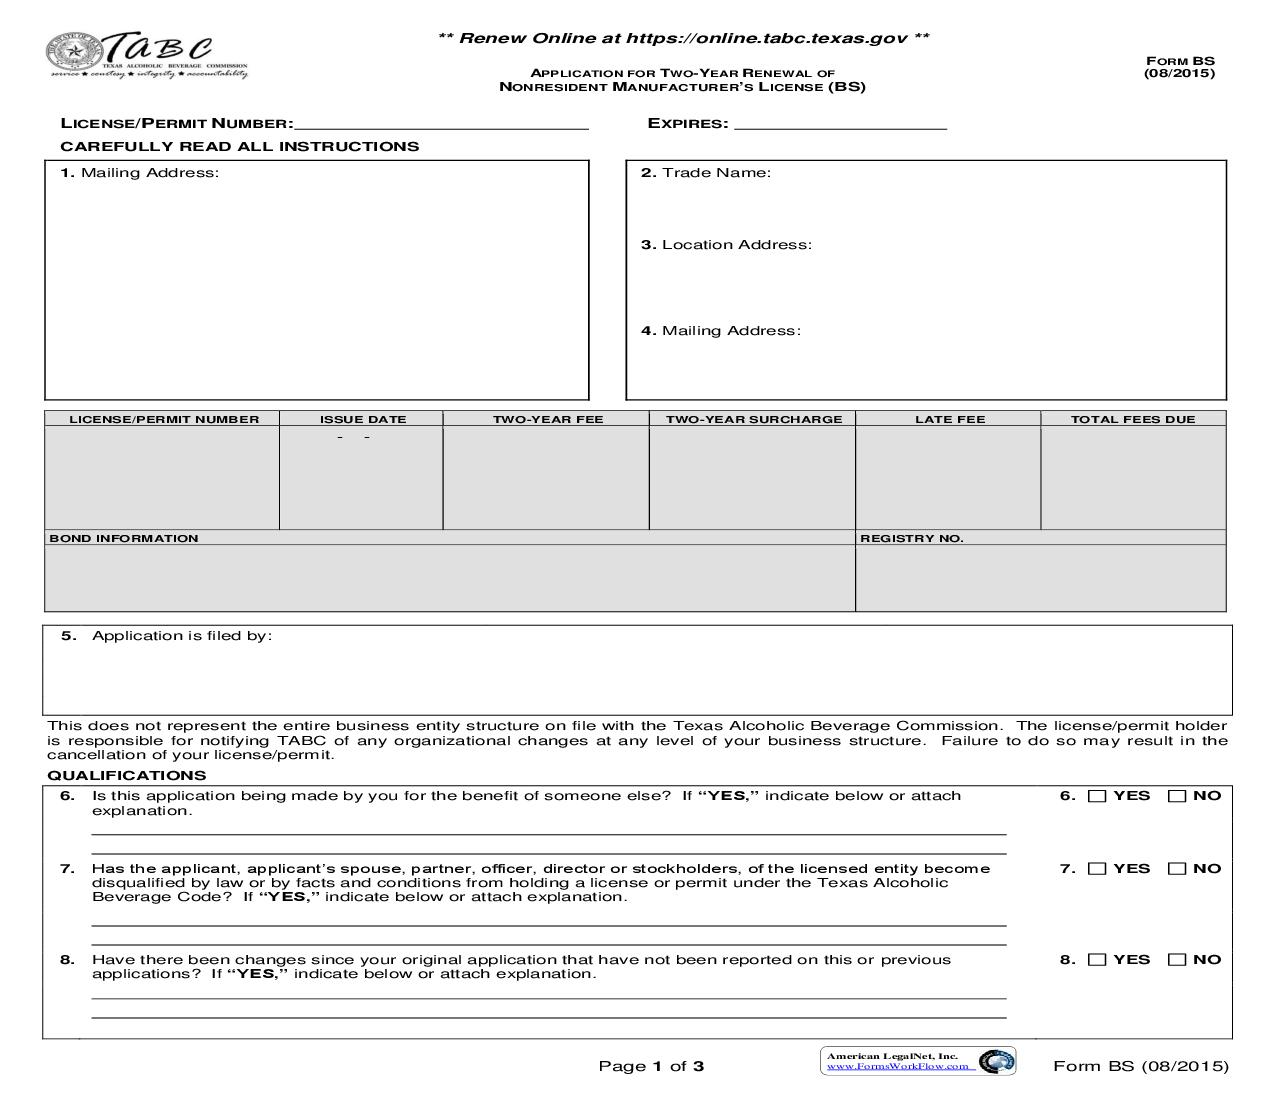 Application For Two Year Renewal Of Nonresident Manufacturers License {BS} | Pdf Fpdf Doc Docx | Texas